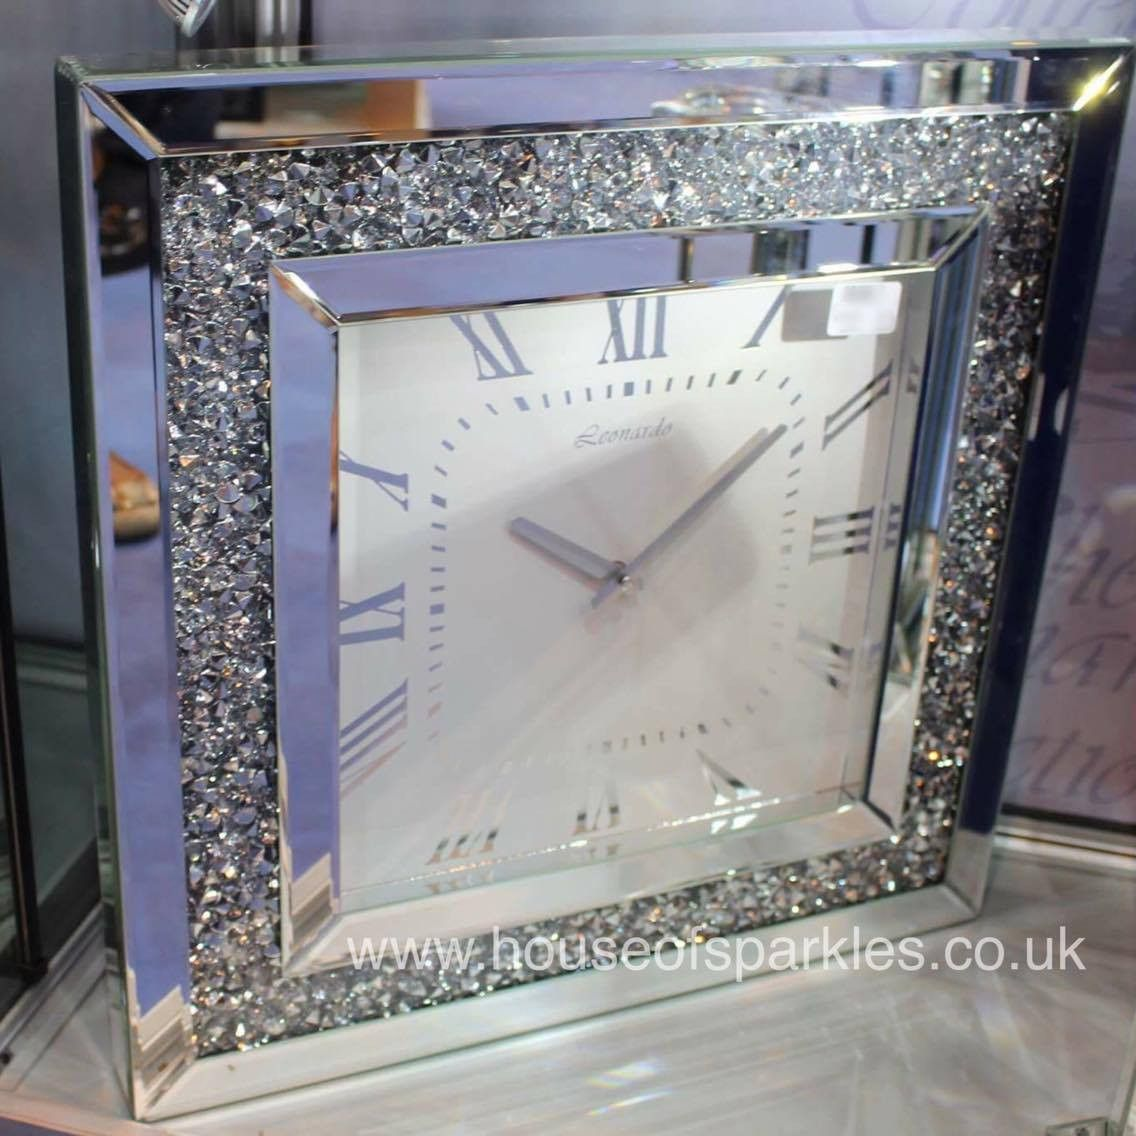 Luxury Diamond Crush Wall Clock House Of Sparkles 1